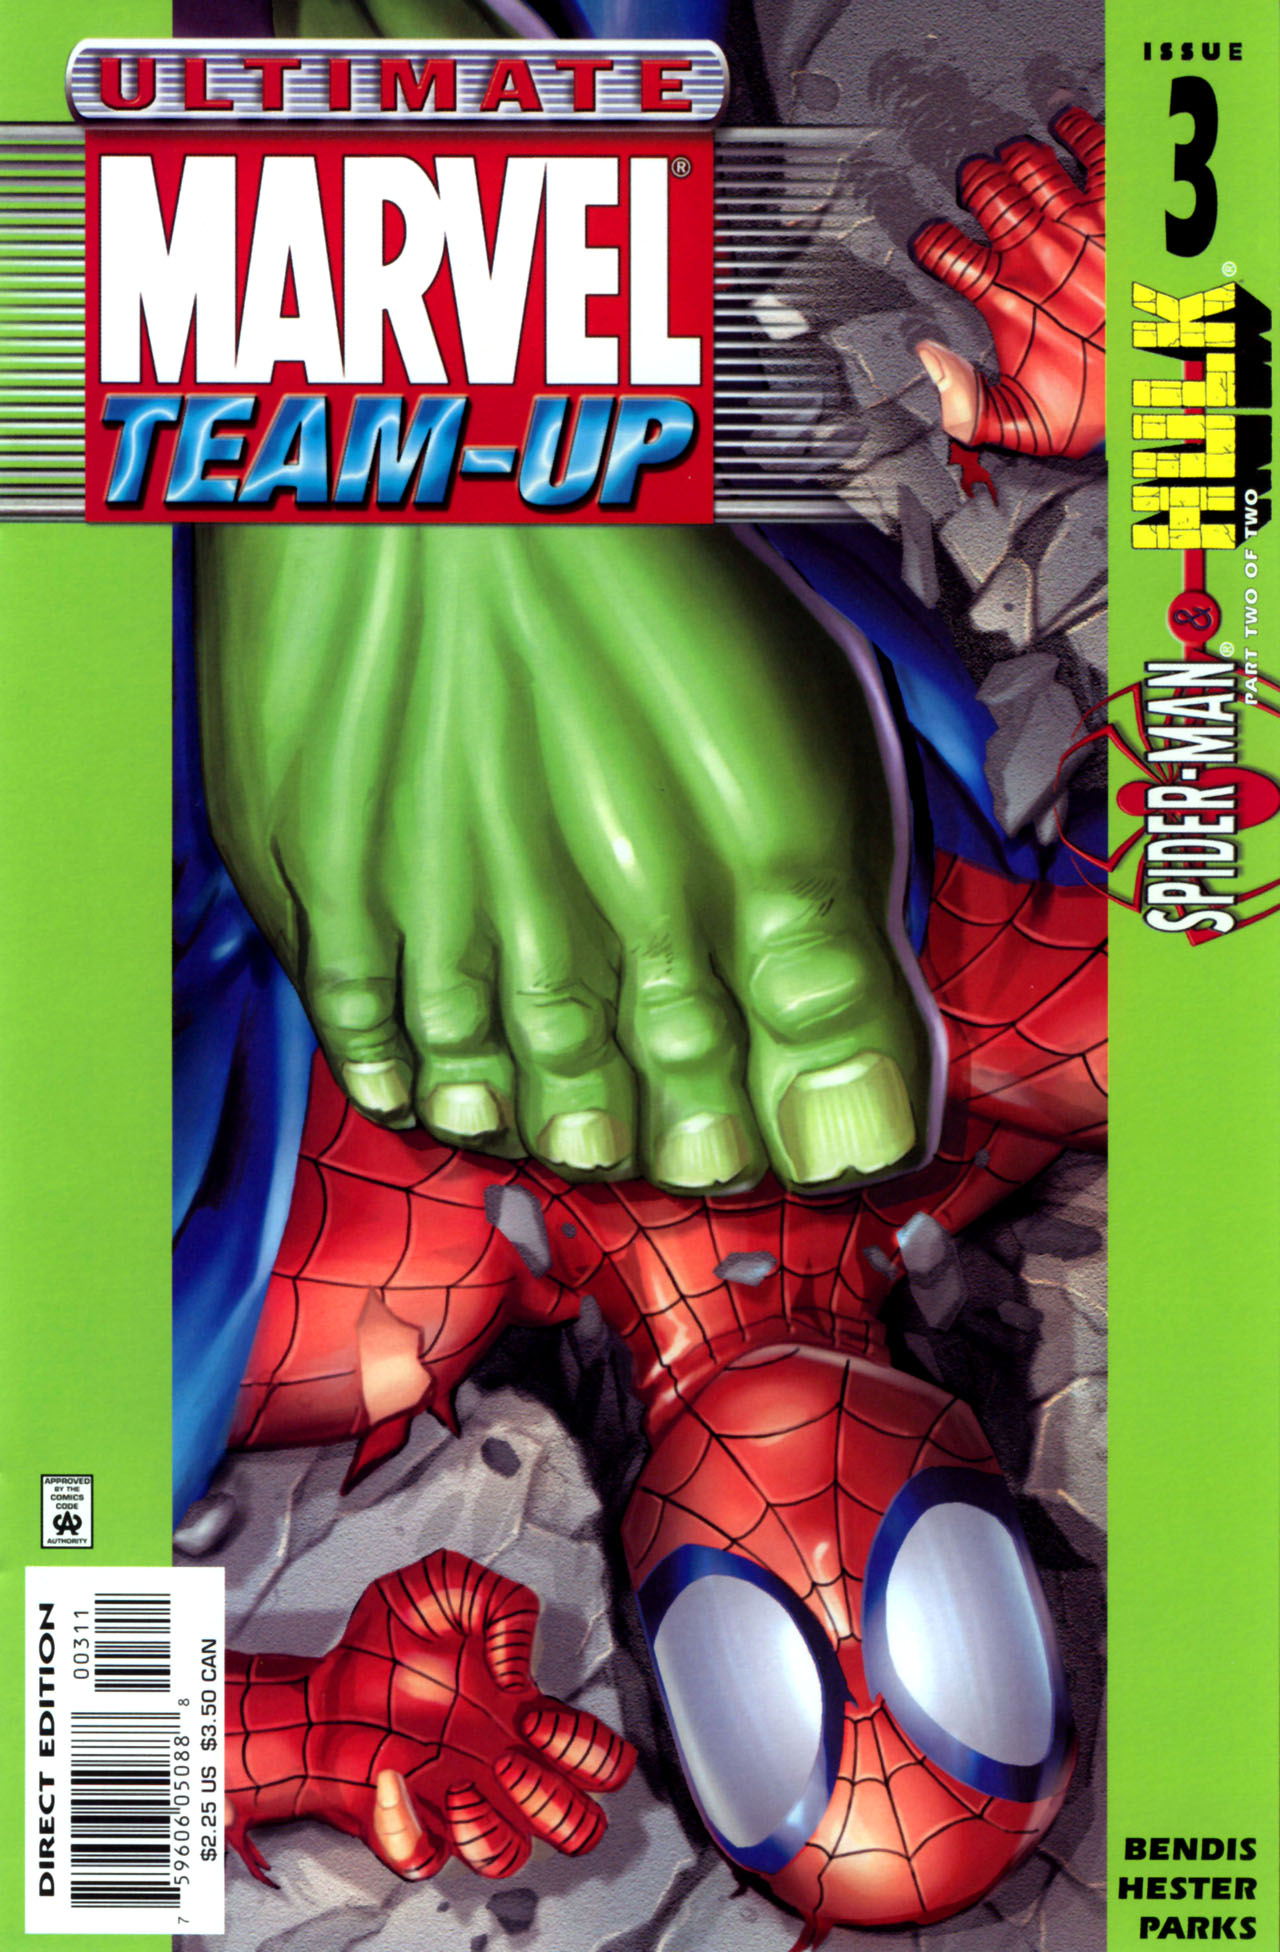 Read online Ultimate Marvel Team-Up comic -  Issue #3 - 1